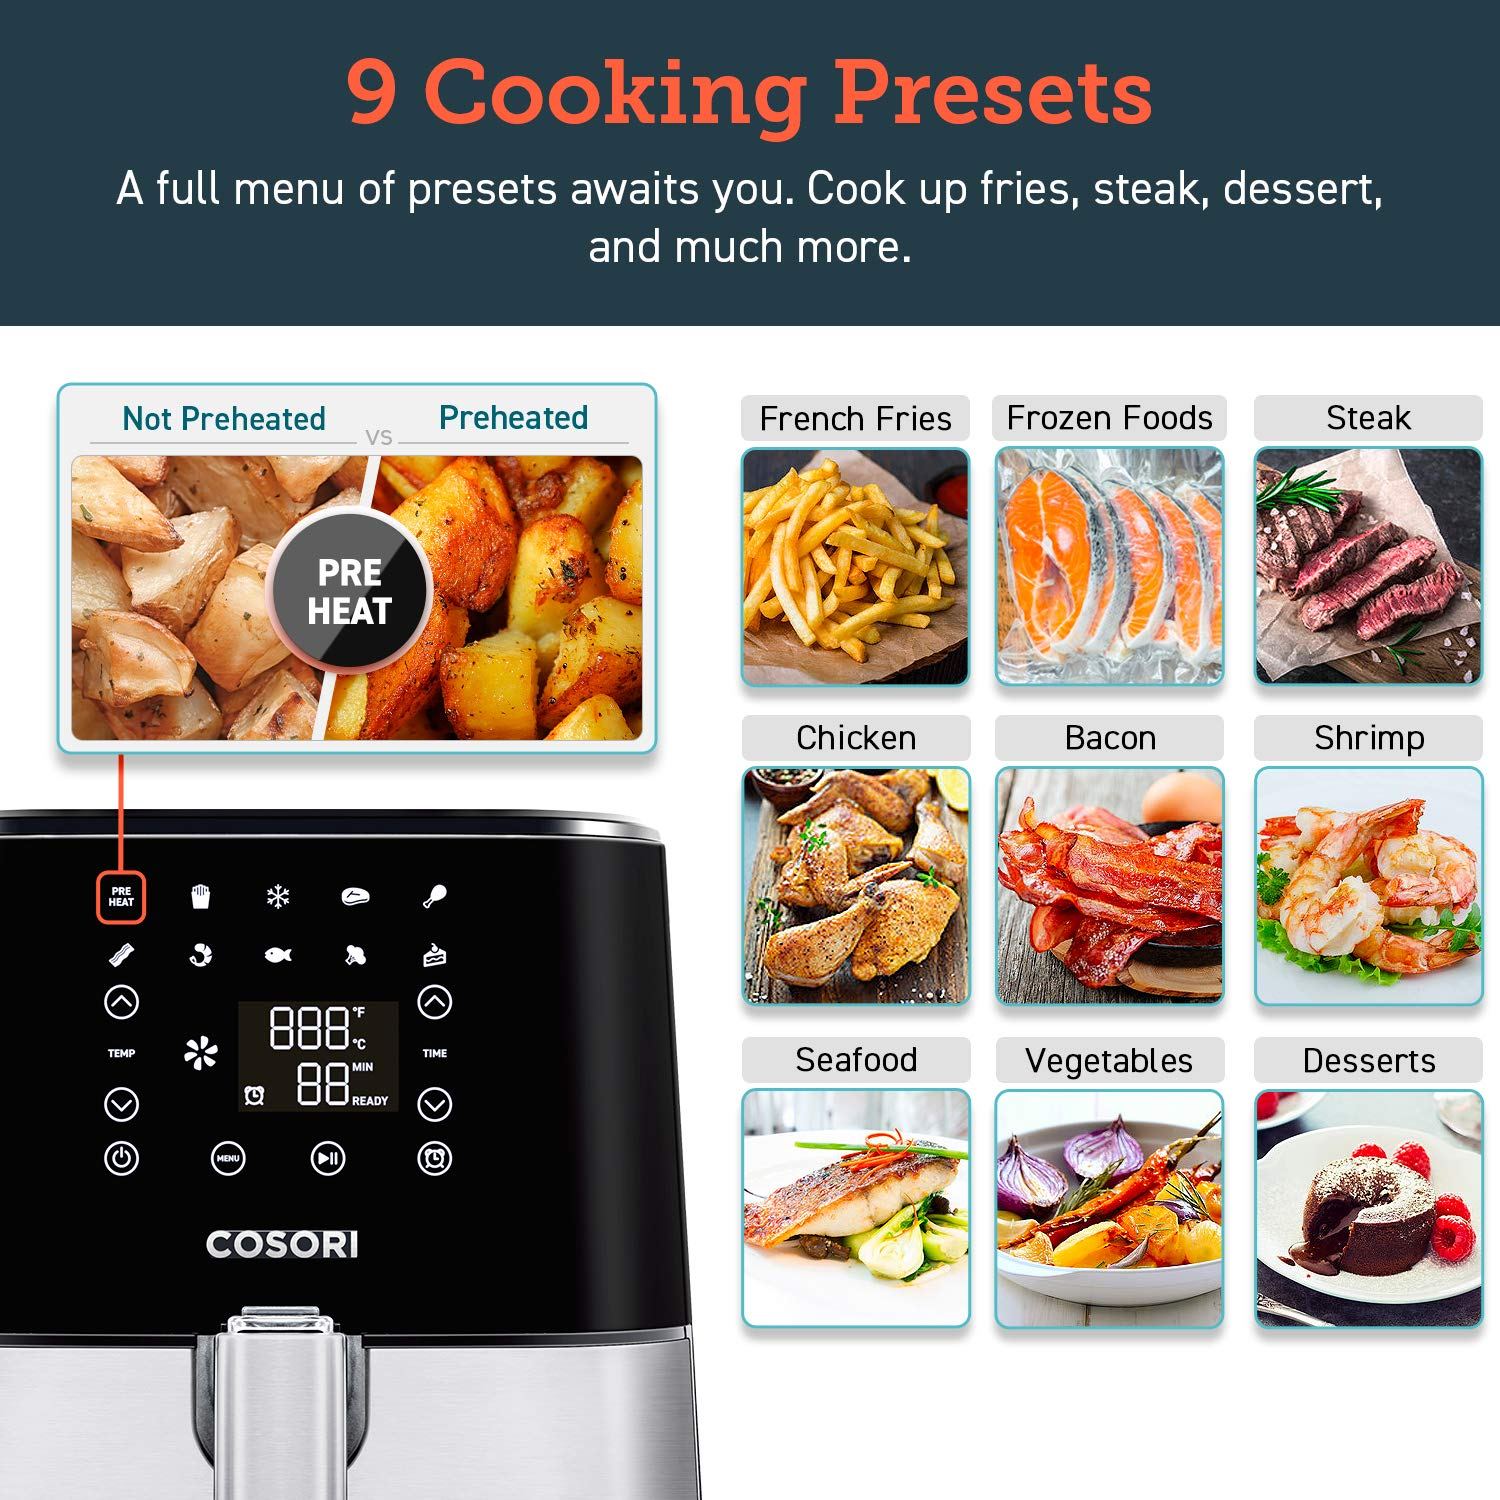 COSORI Stainless Steel Air Fryer (100 Recipes, Rack & 5 Skewers), 5.8Qt Large Air Fryers XL Oven Oilless Cooker, Preheat/Alarm Reminder, 9 Presets, Nonstick Basket, 2-Year Warranty, ETL/UL Listed by COSORI (Image #3)